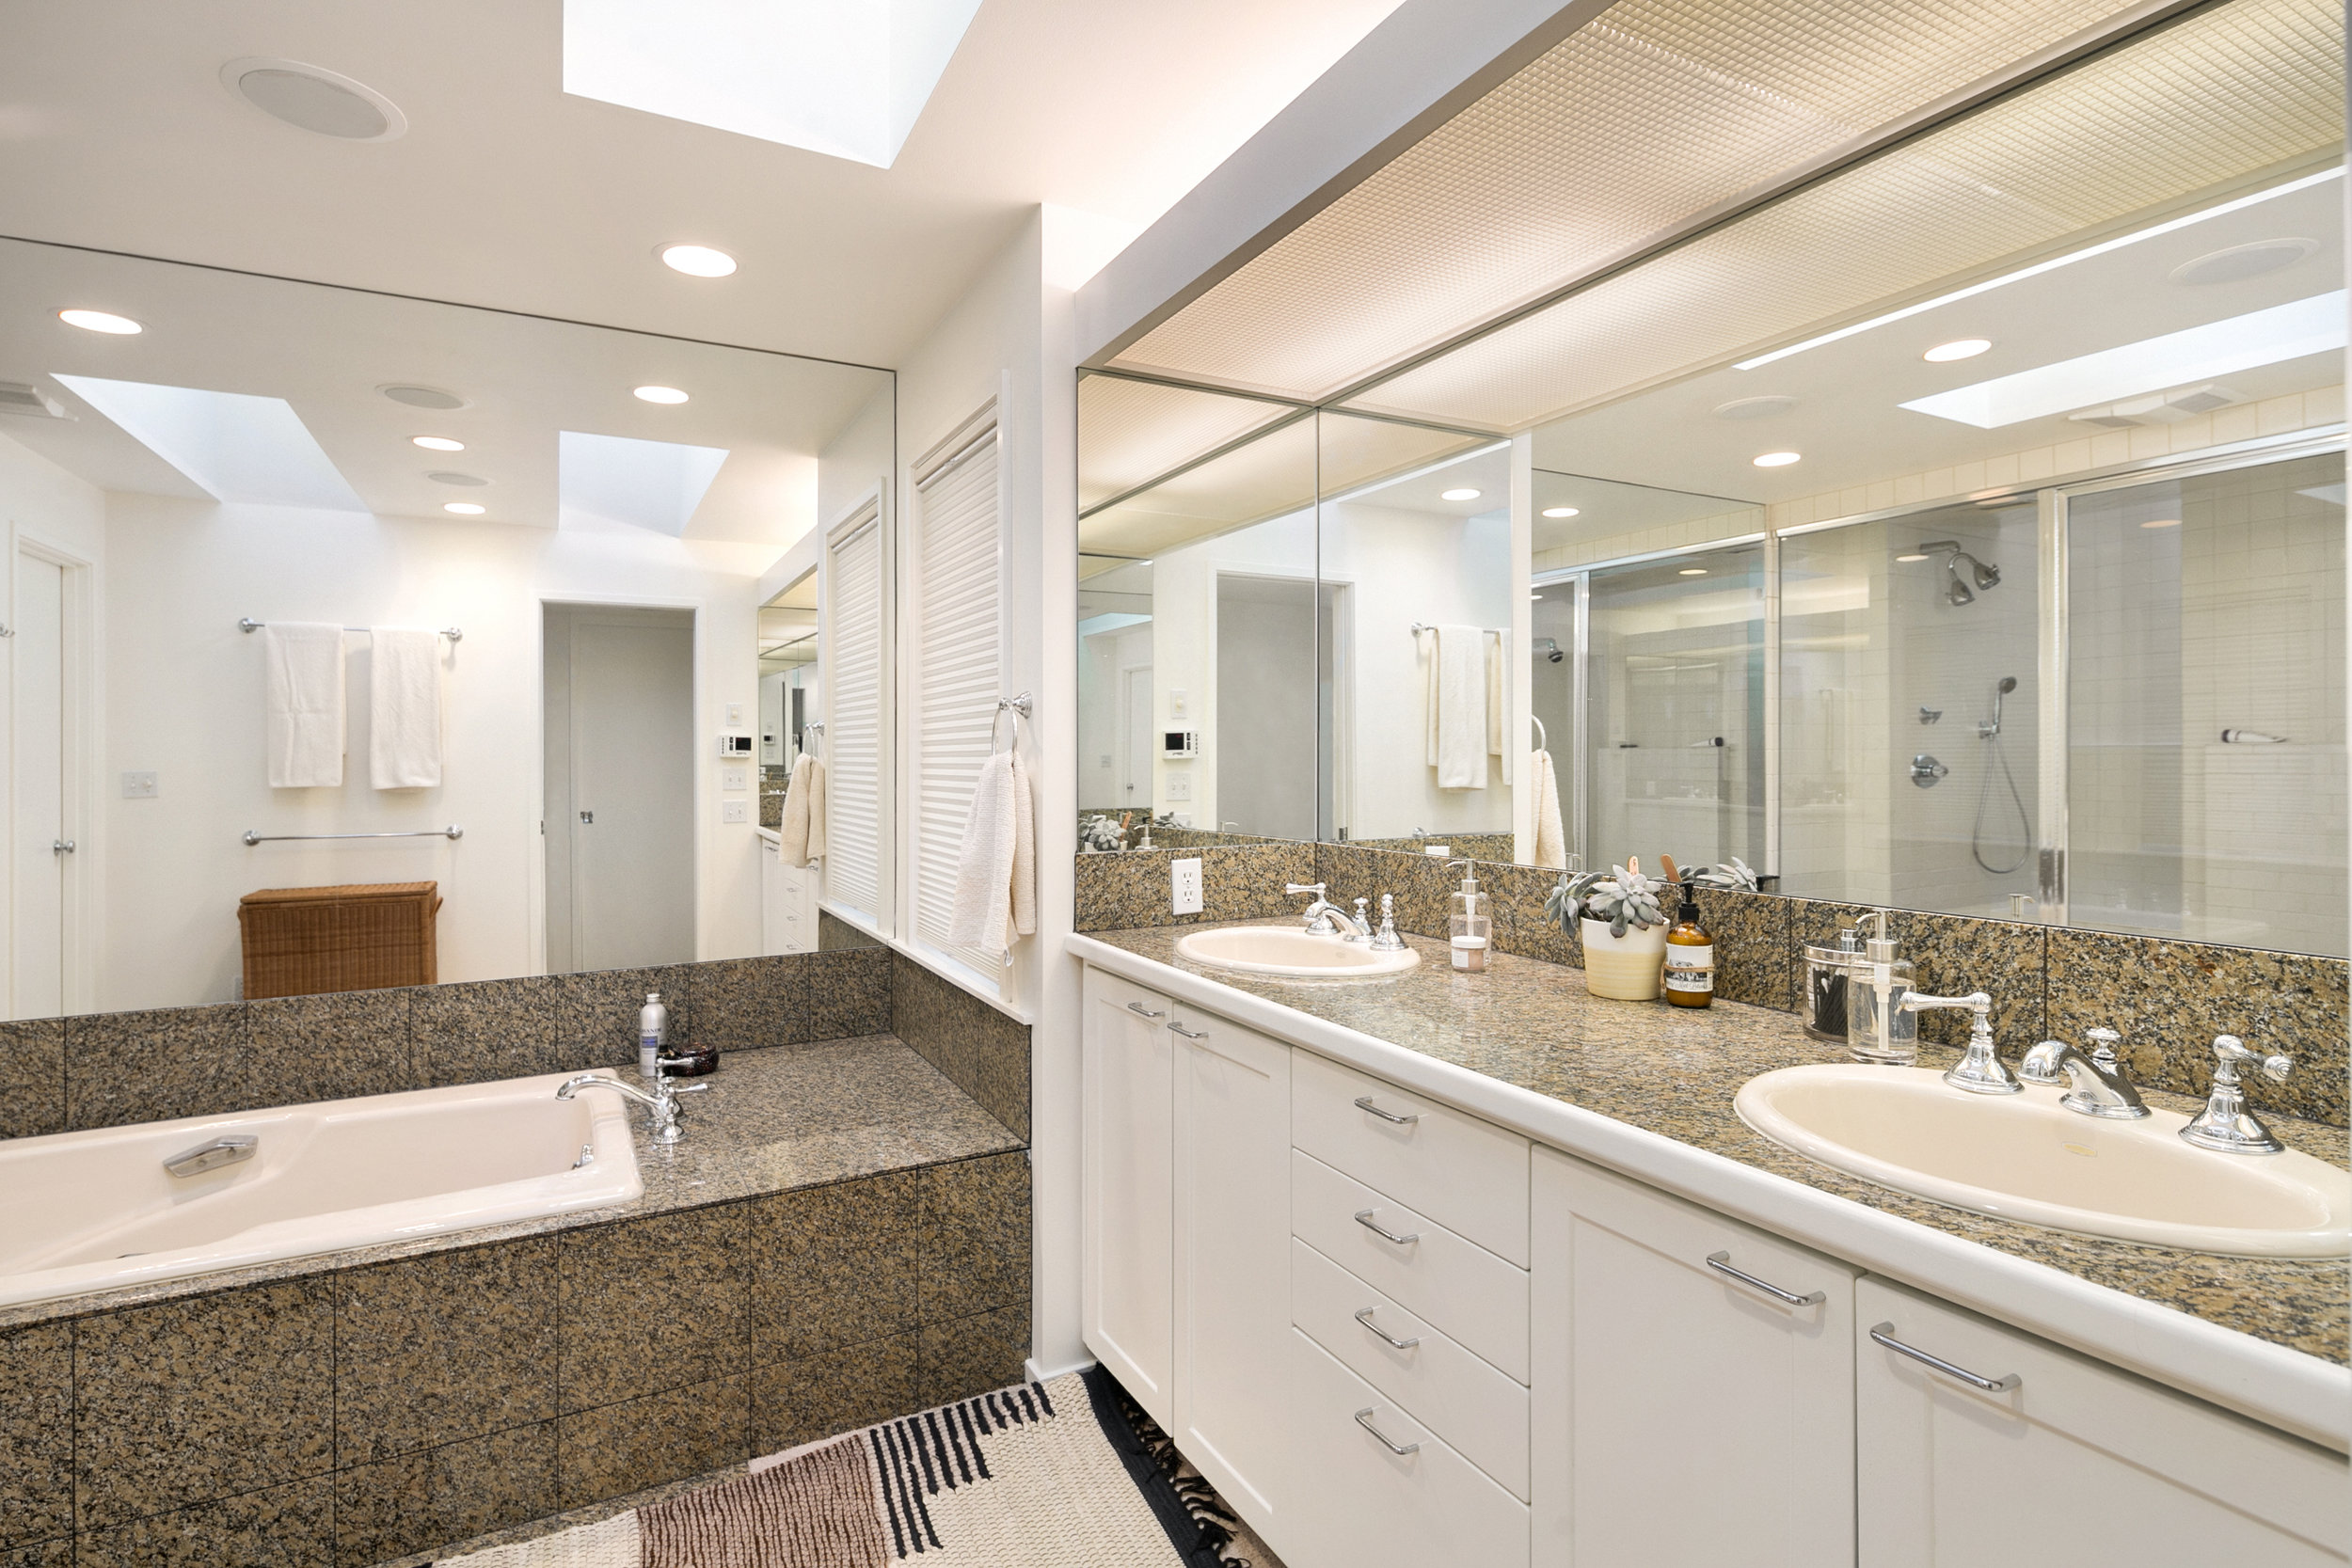 The master bath also features skylights, large shower and a generous soaking tub, ready for your personal design vision.